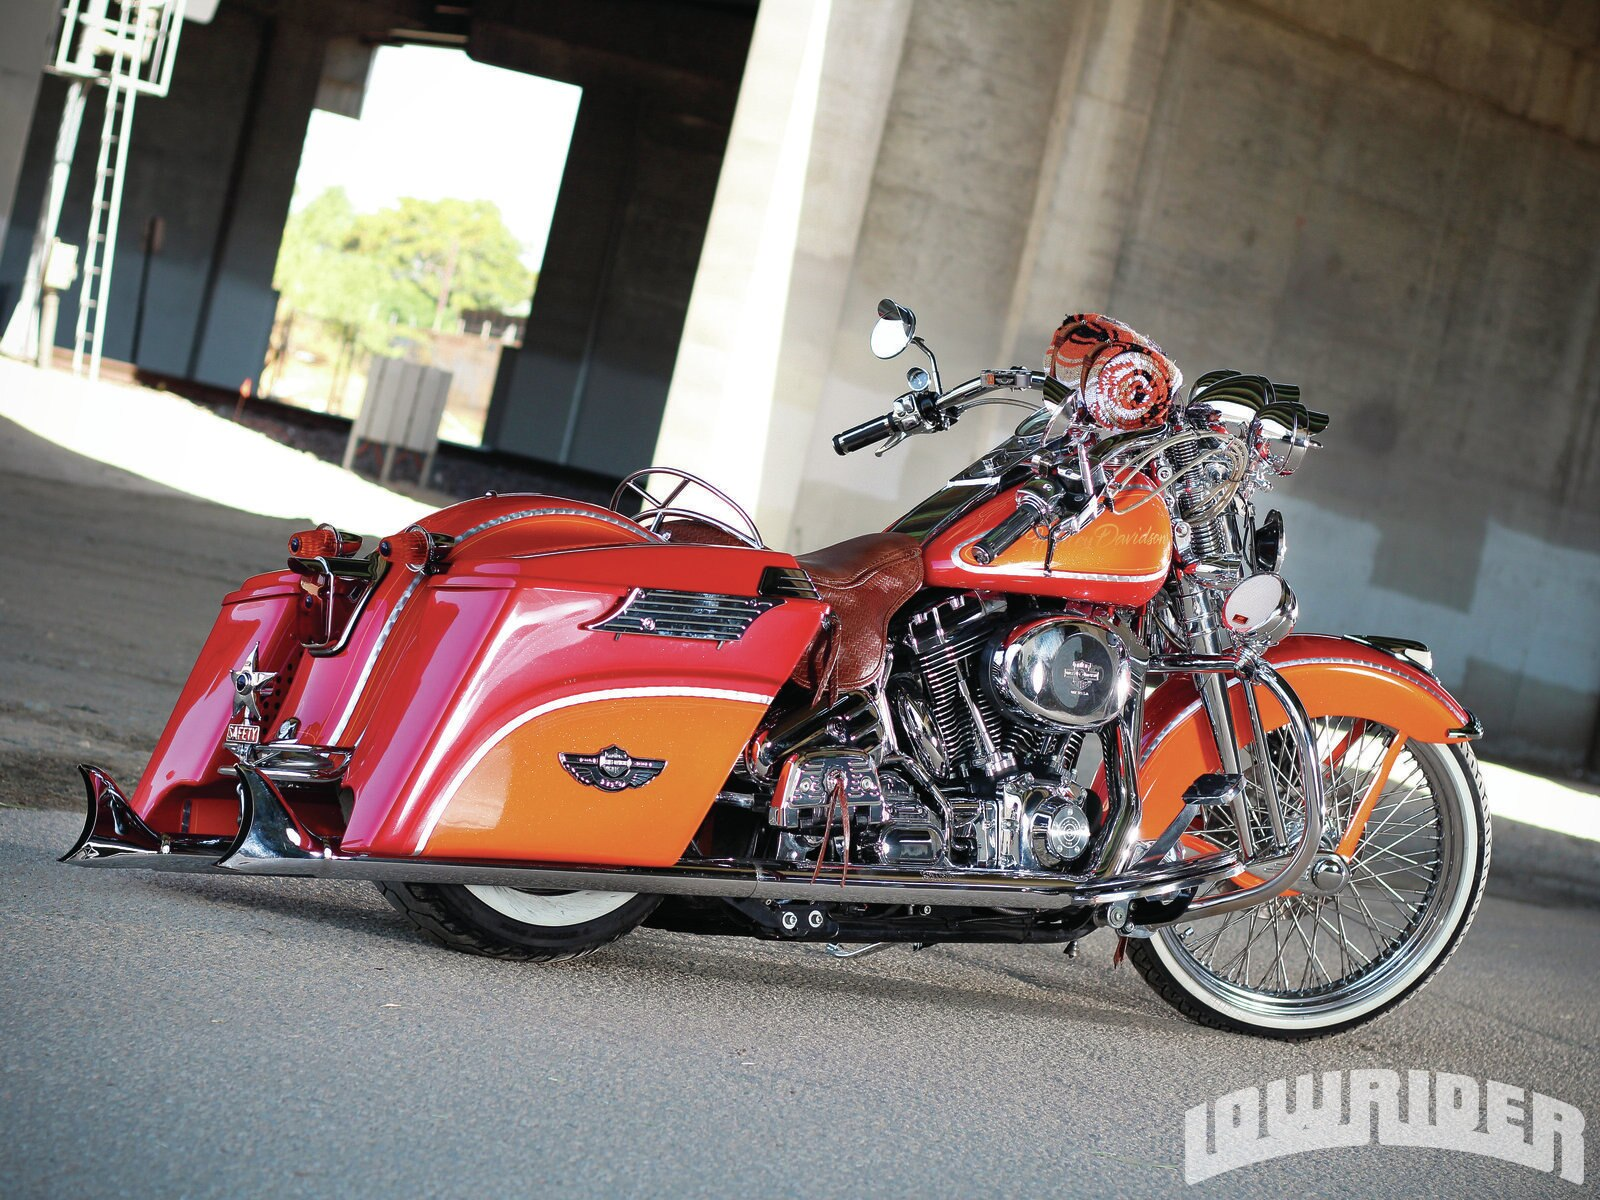 2003-harley-davidson-100th-anniversary-edition-heritage-springer-rear-right-side-view1